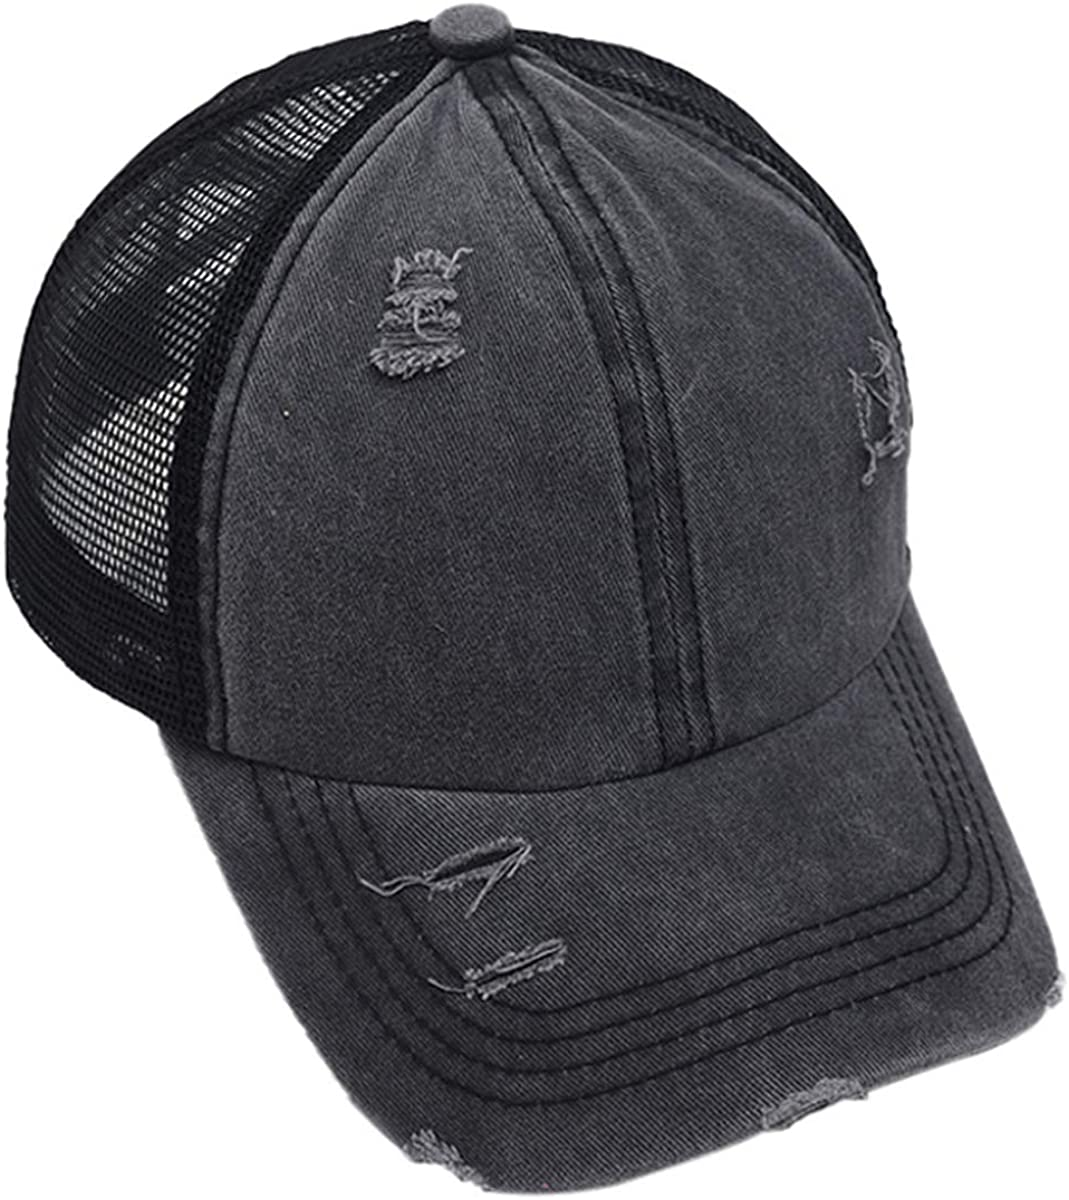 Leotruny Women Washed Cotton High Ponytail Baseball Cap Criss Cross Hat